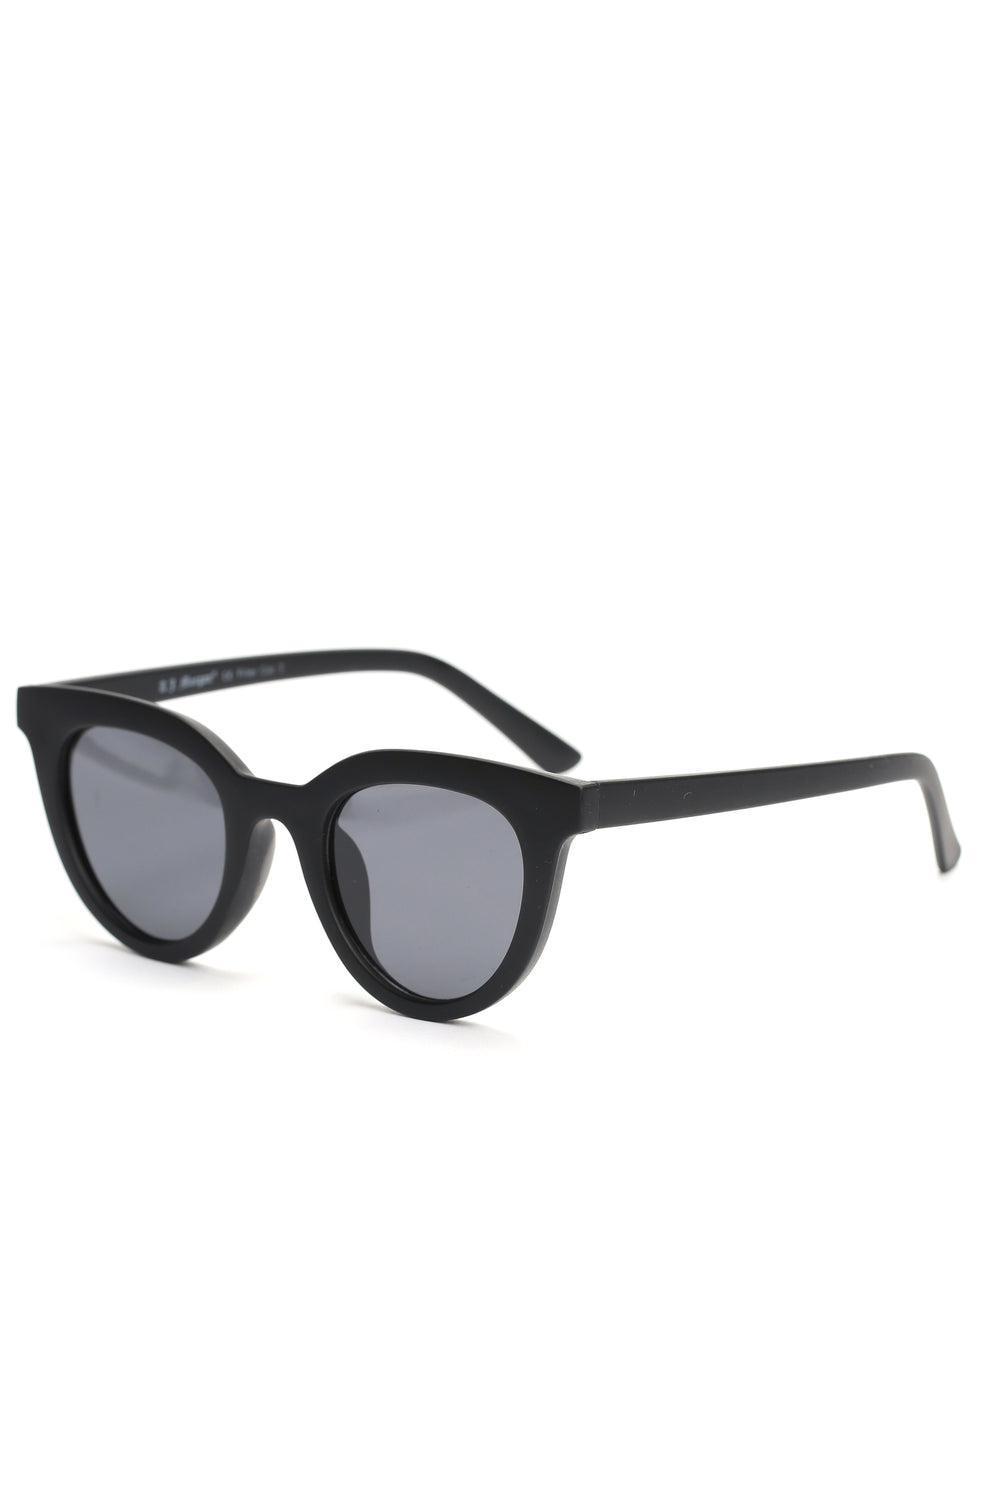 Off Duty Sunglasses - Black